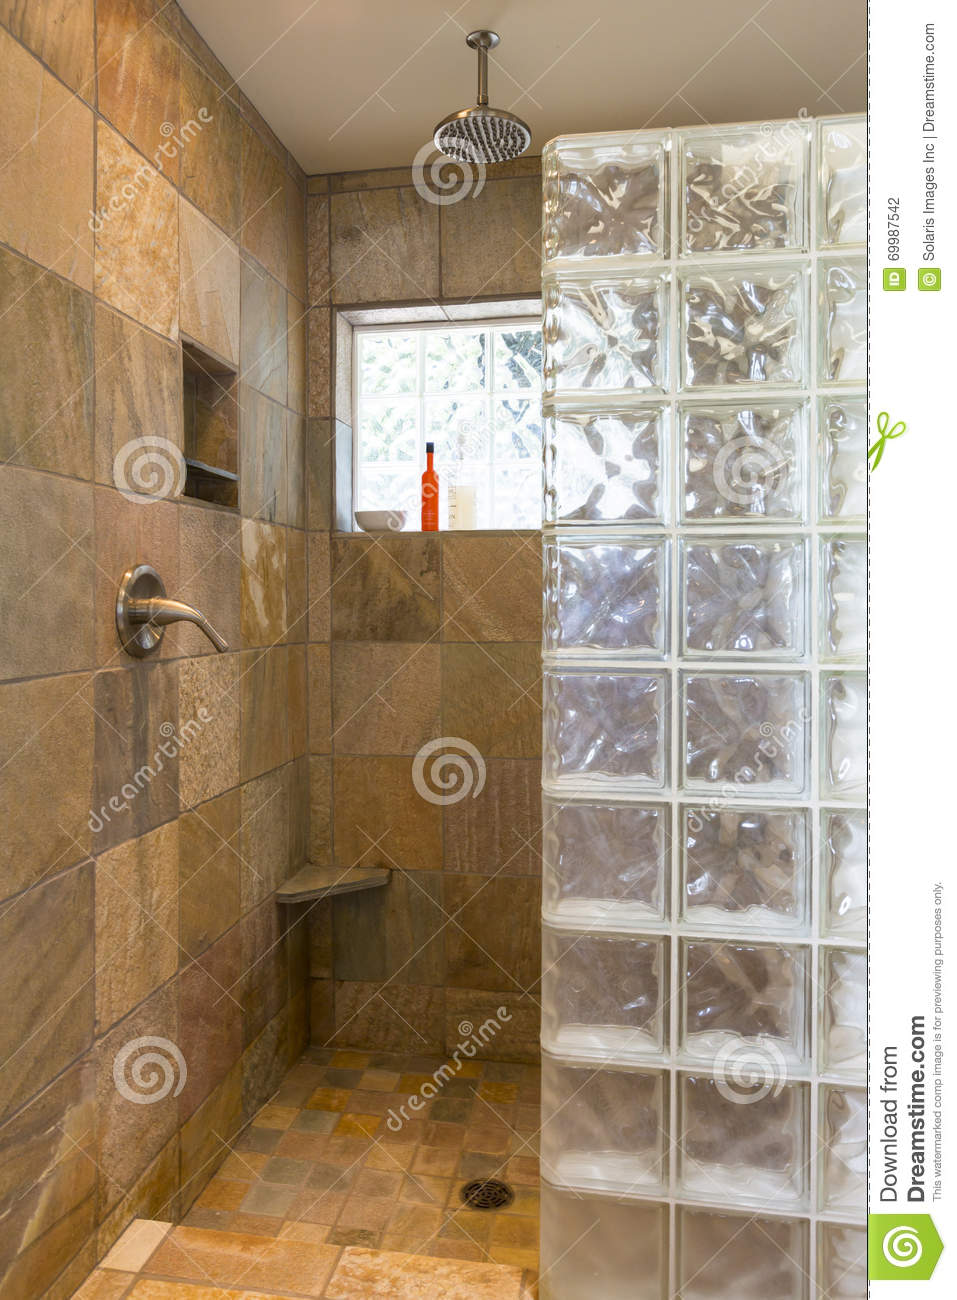 Spa Bathroom Shower Area With Stone Tile And Glass Block Walls In  Contemporary Upscale Home Interior